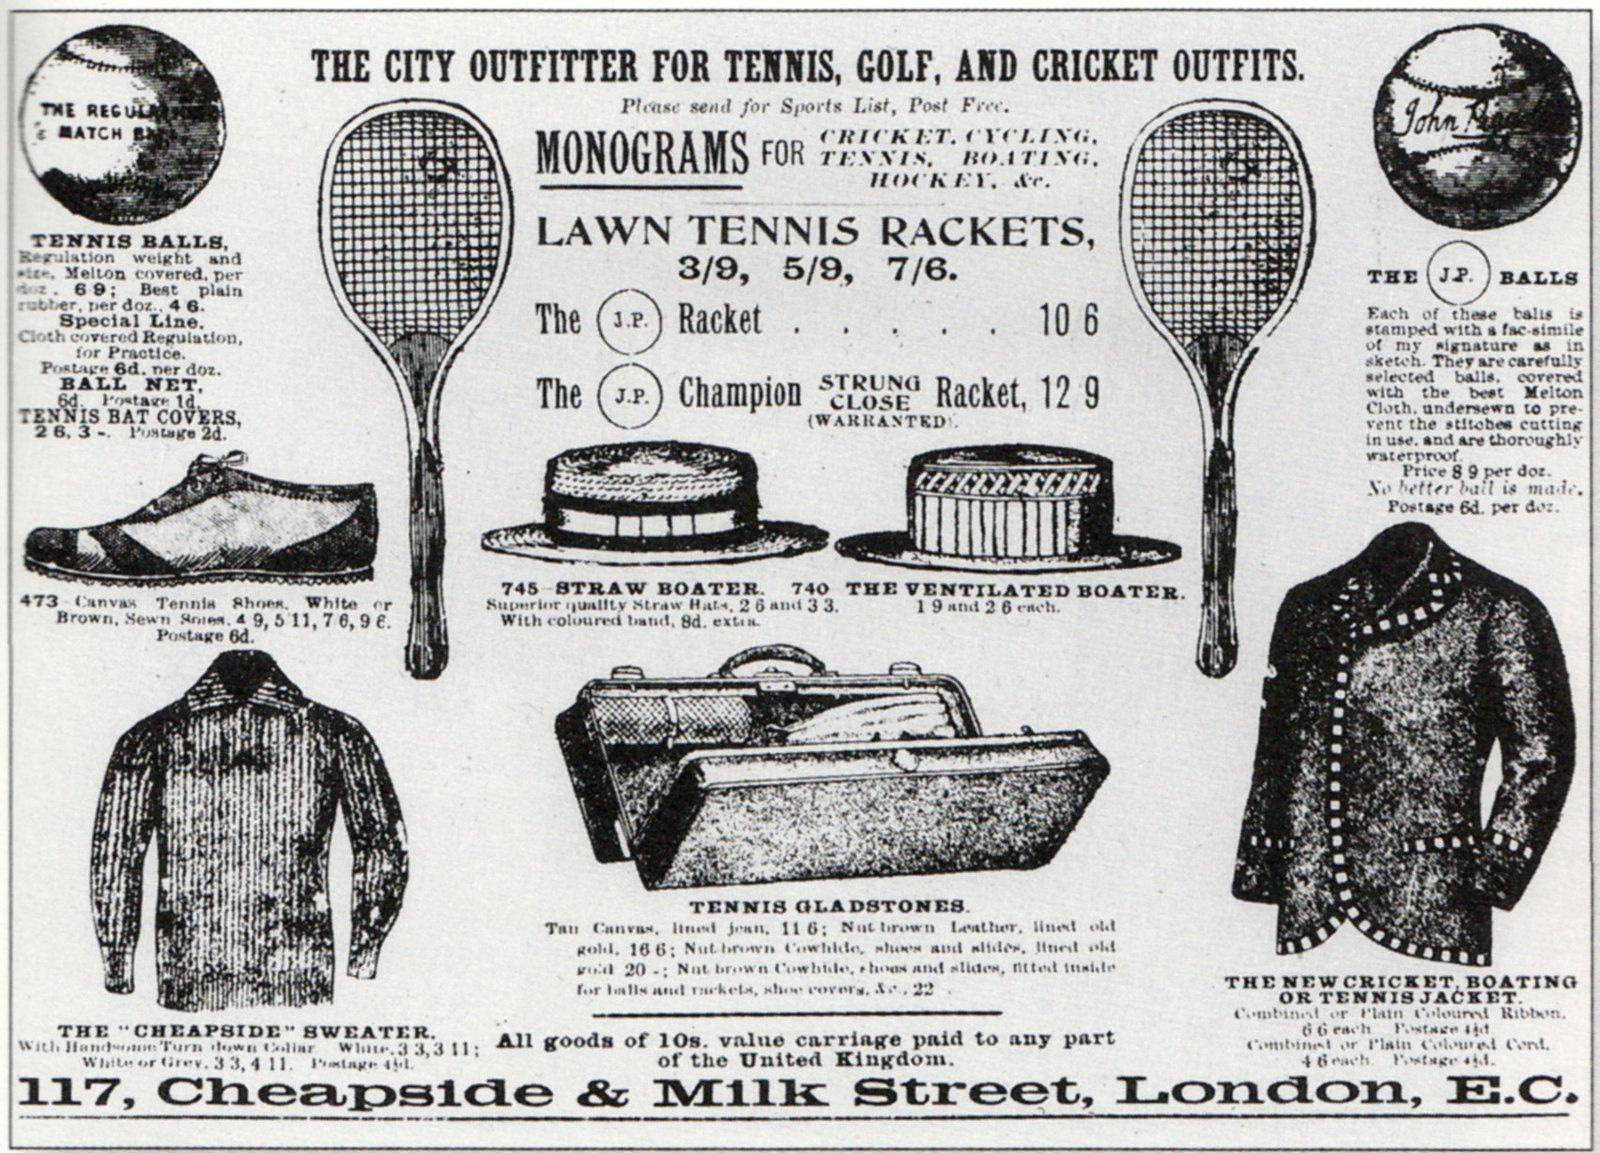 Early advertisement for tennis equipment, from an English newspaper.